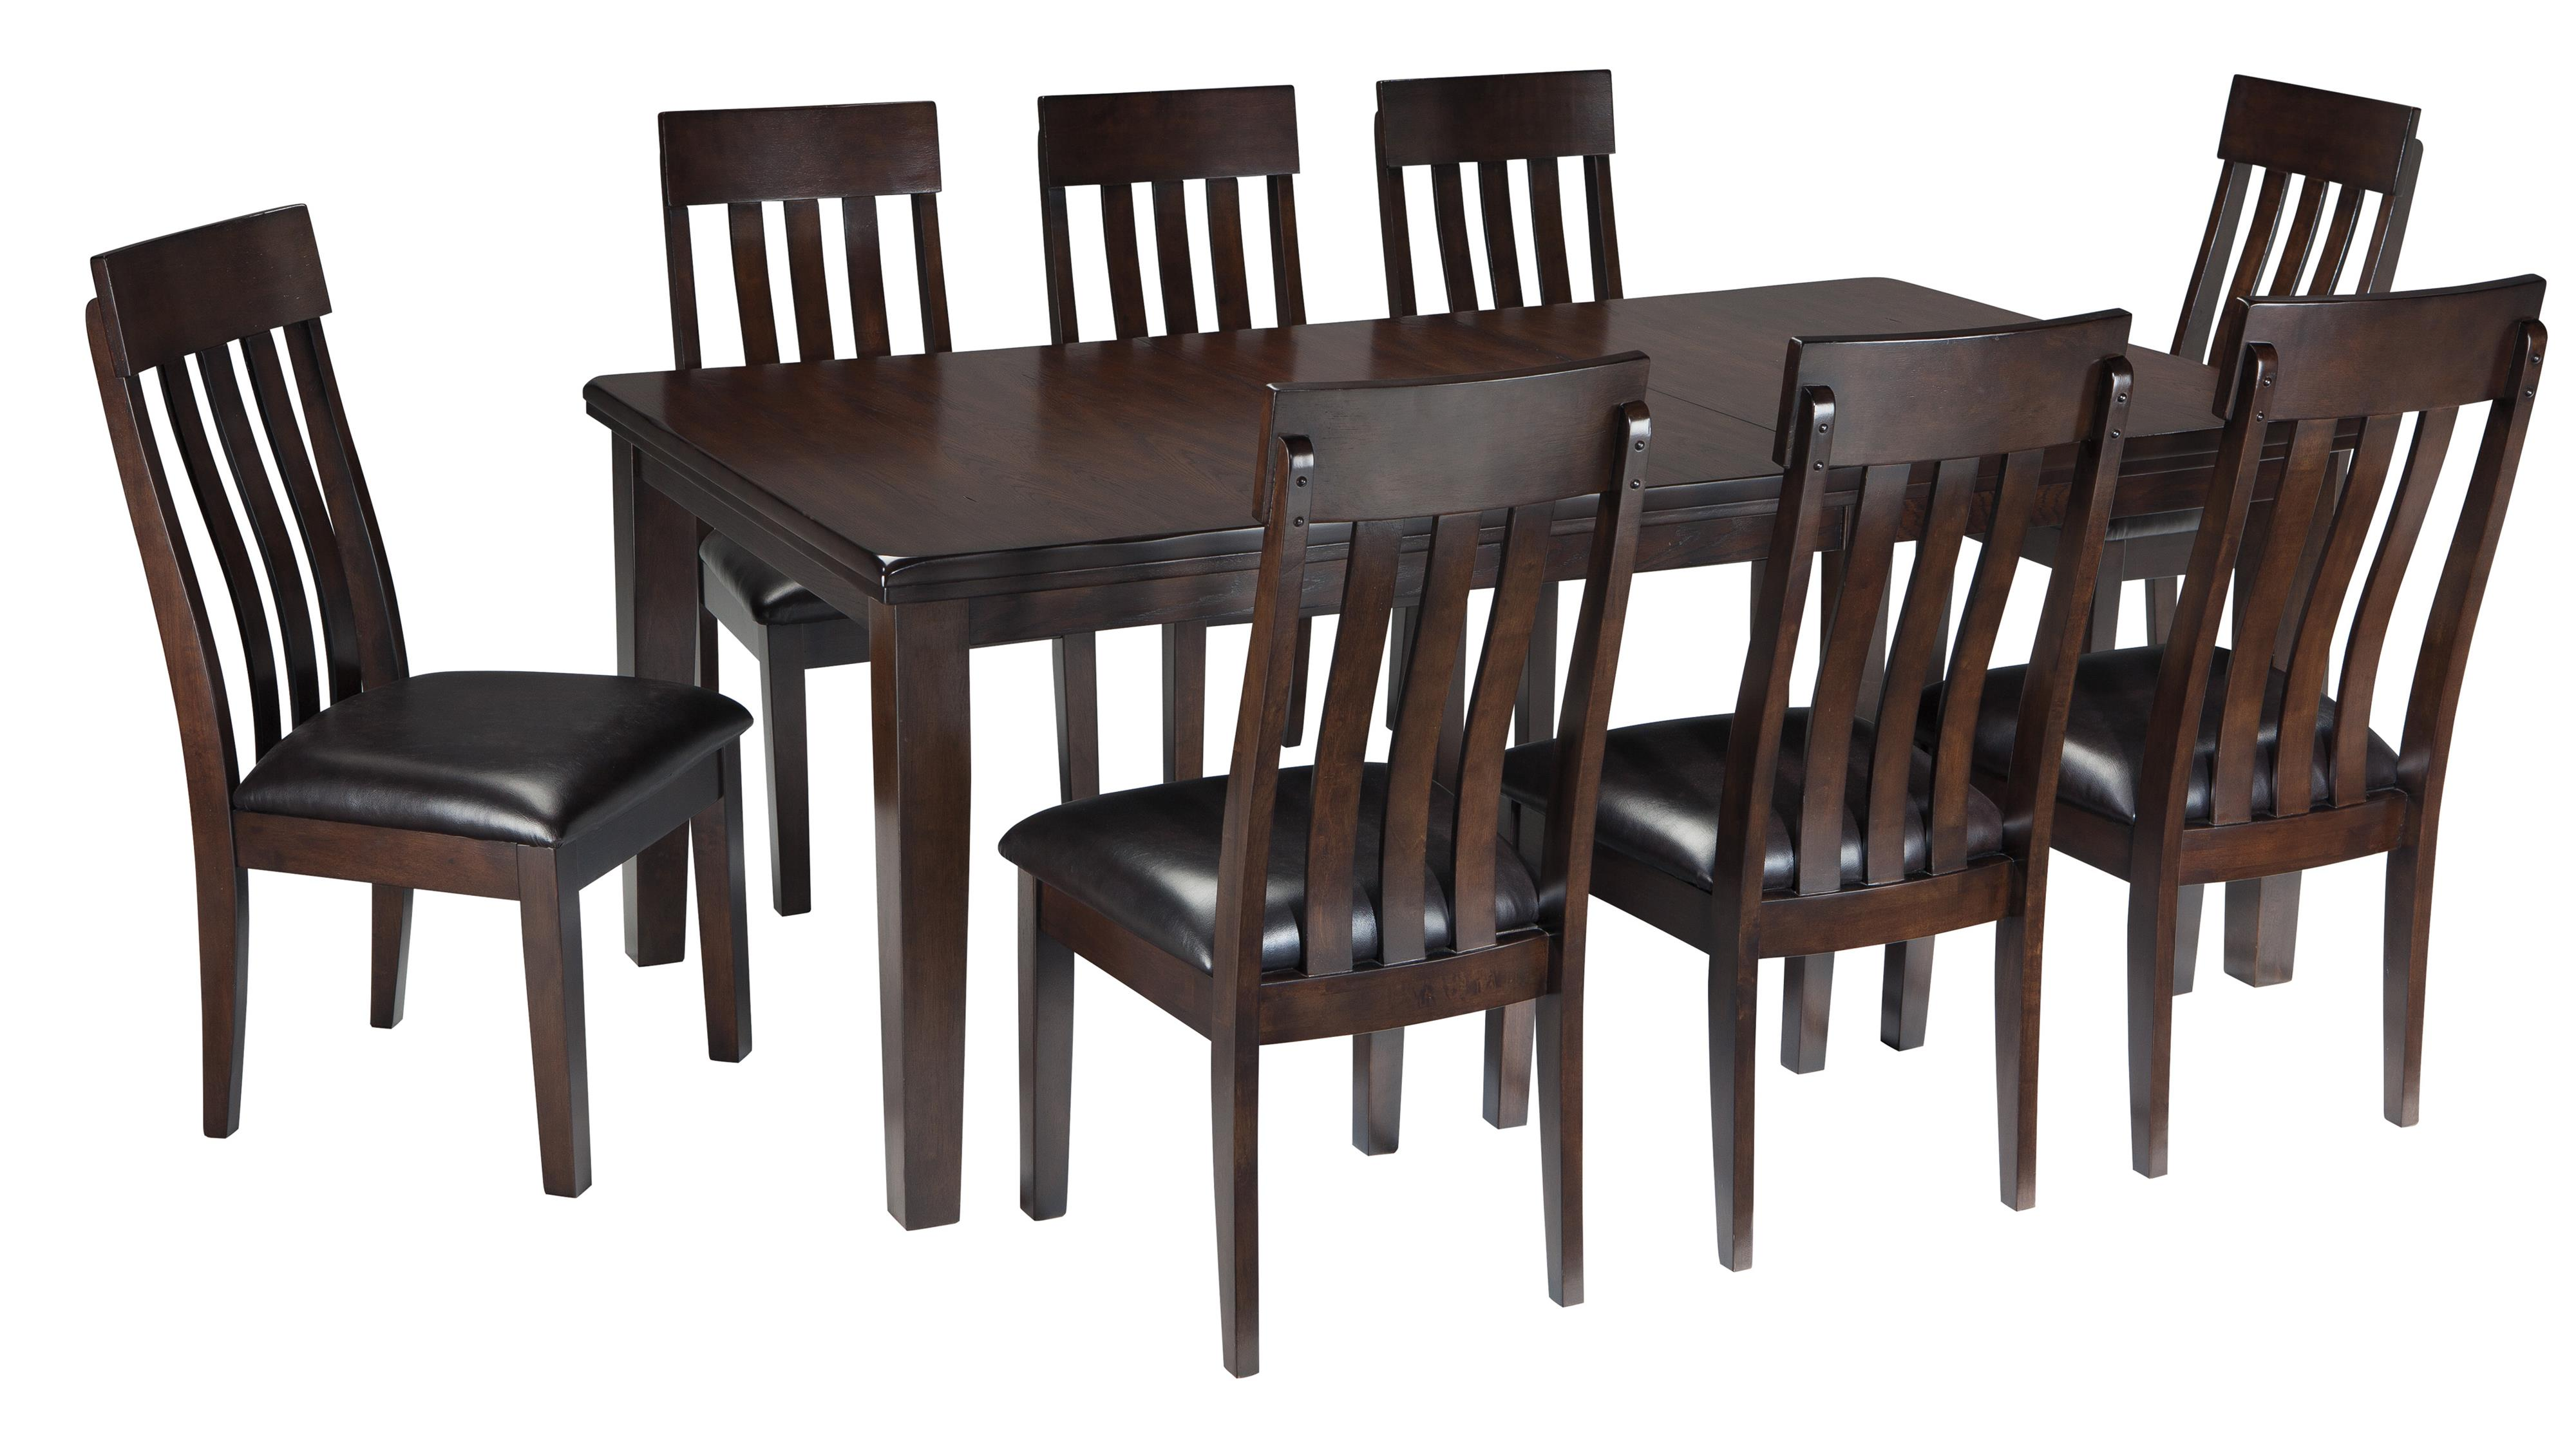 Signature Design by Ashley Haddigan 9-Piece Dining Room Table & Side Chair Set - Item Number: D596-35+8x01